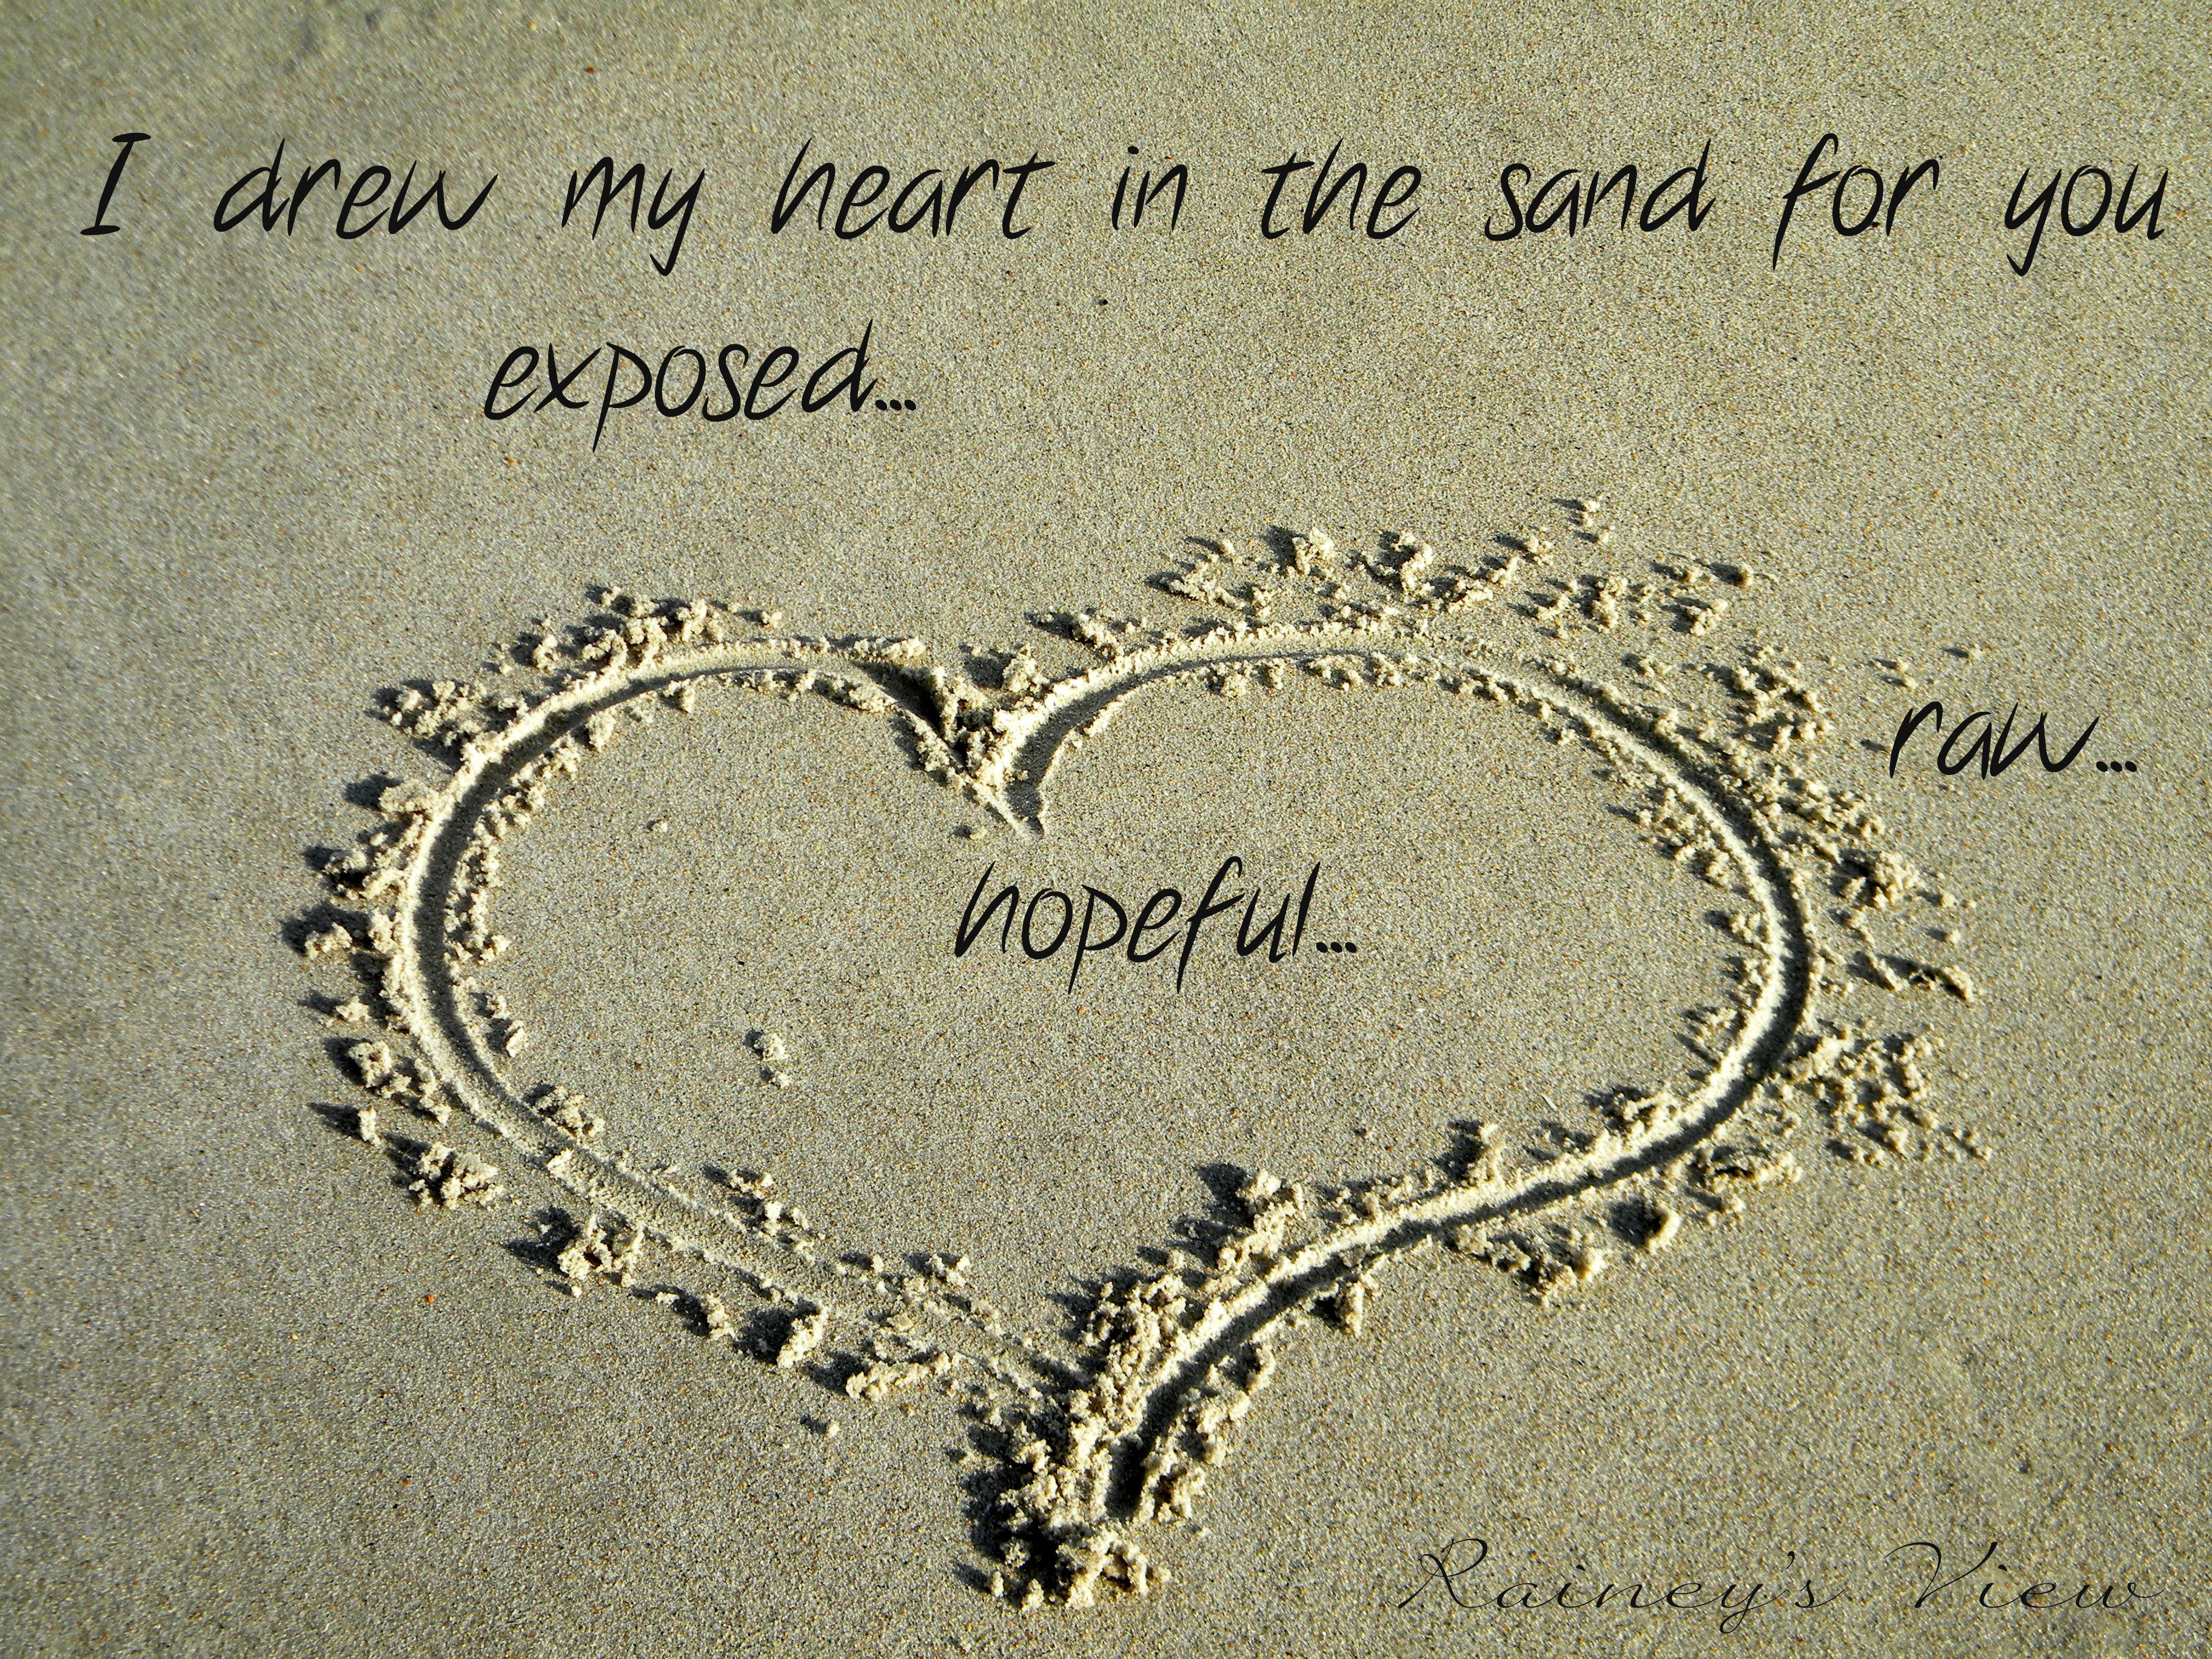 30 Heart Touching Love Poems for Her | Quotes | Pinterest | For ...